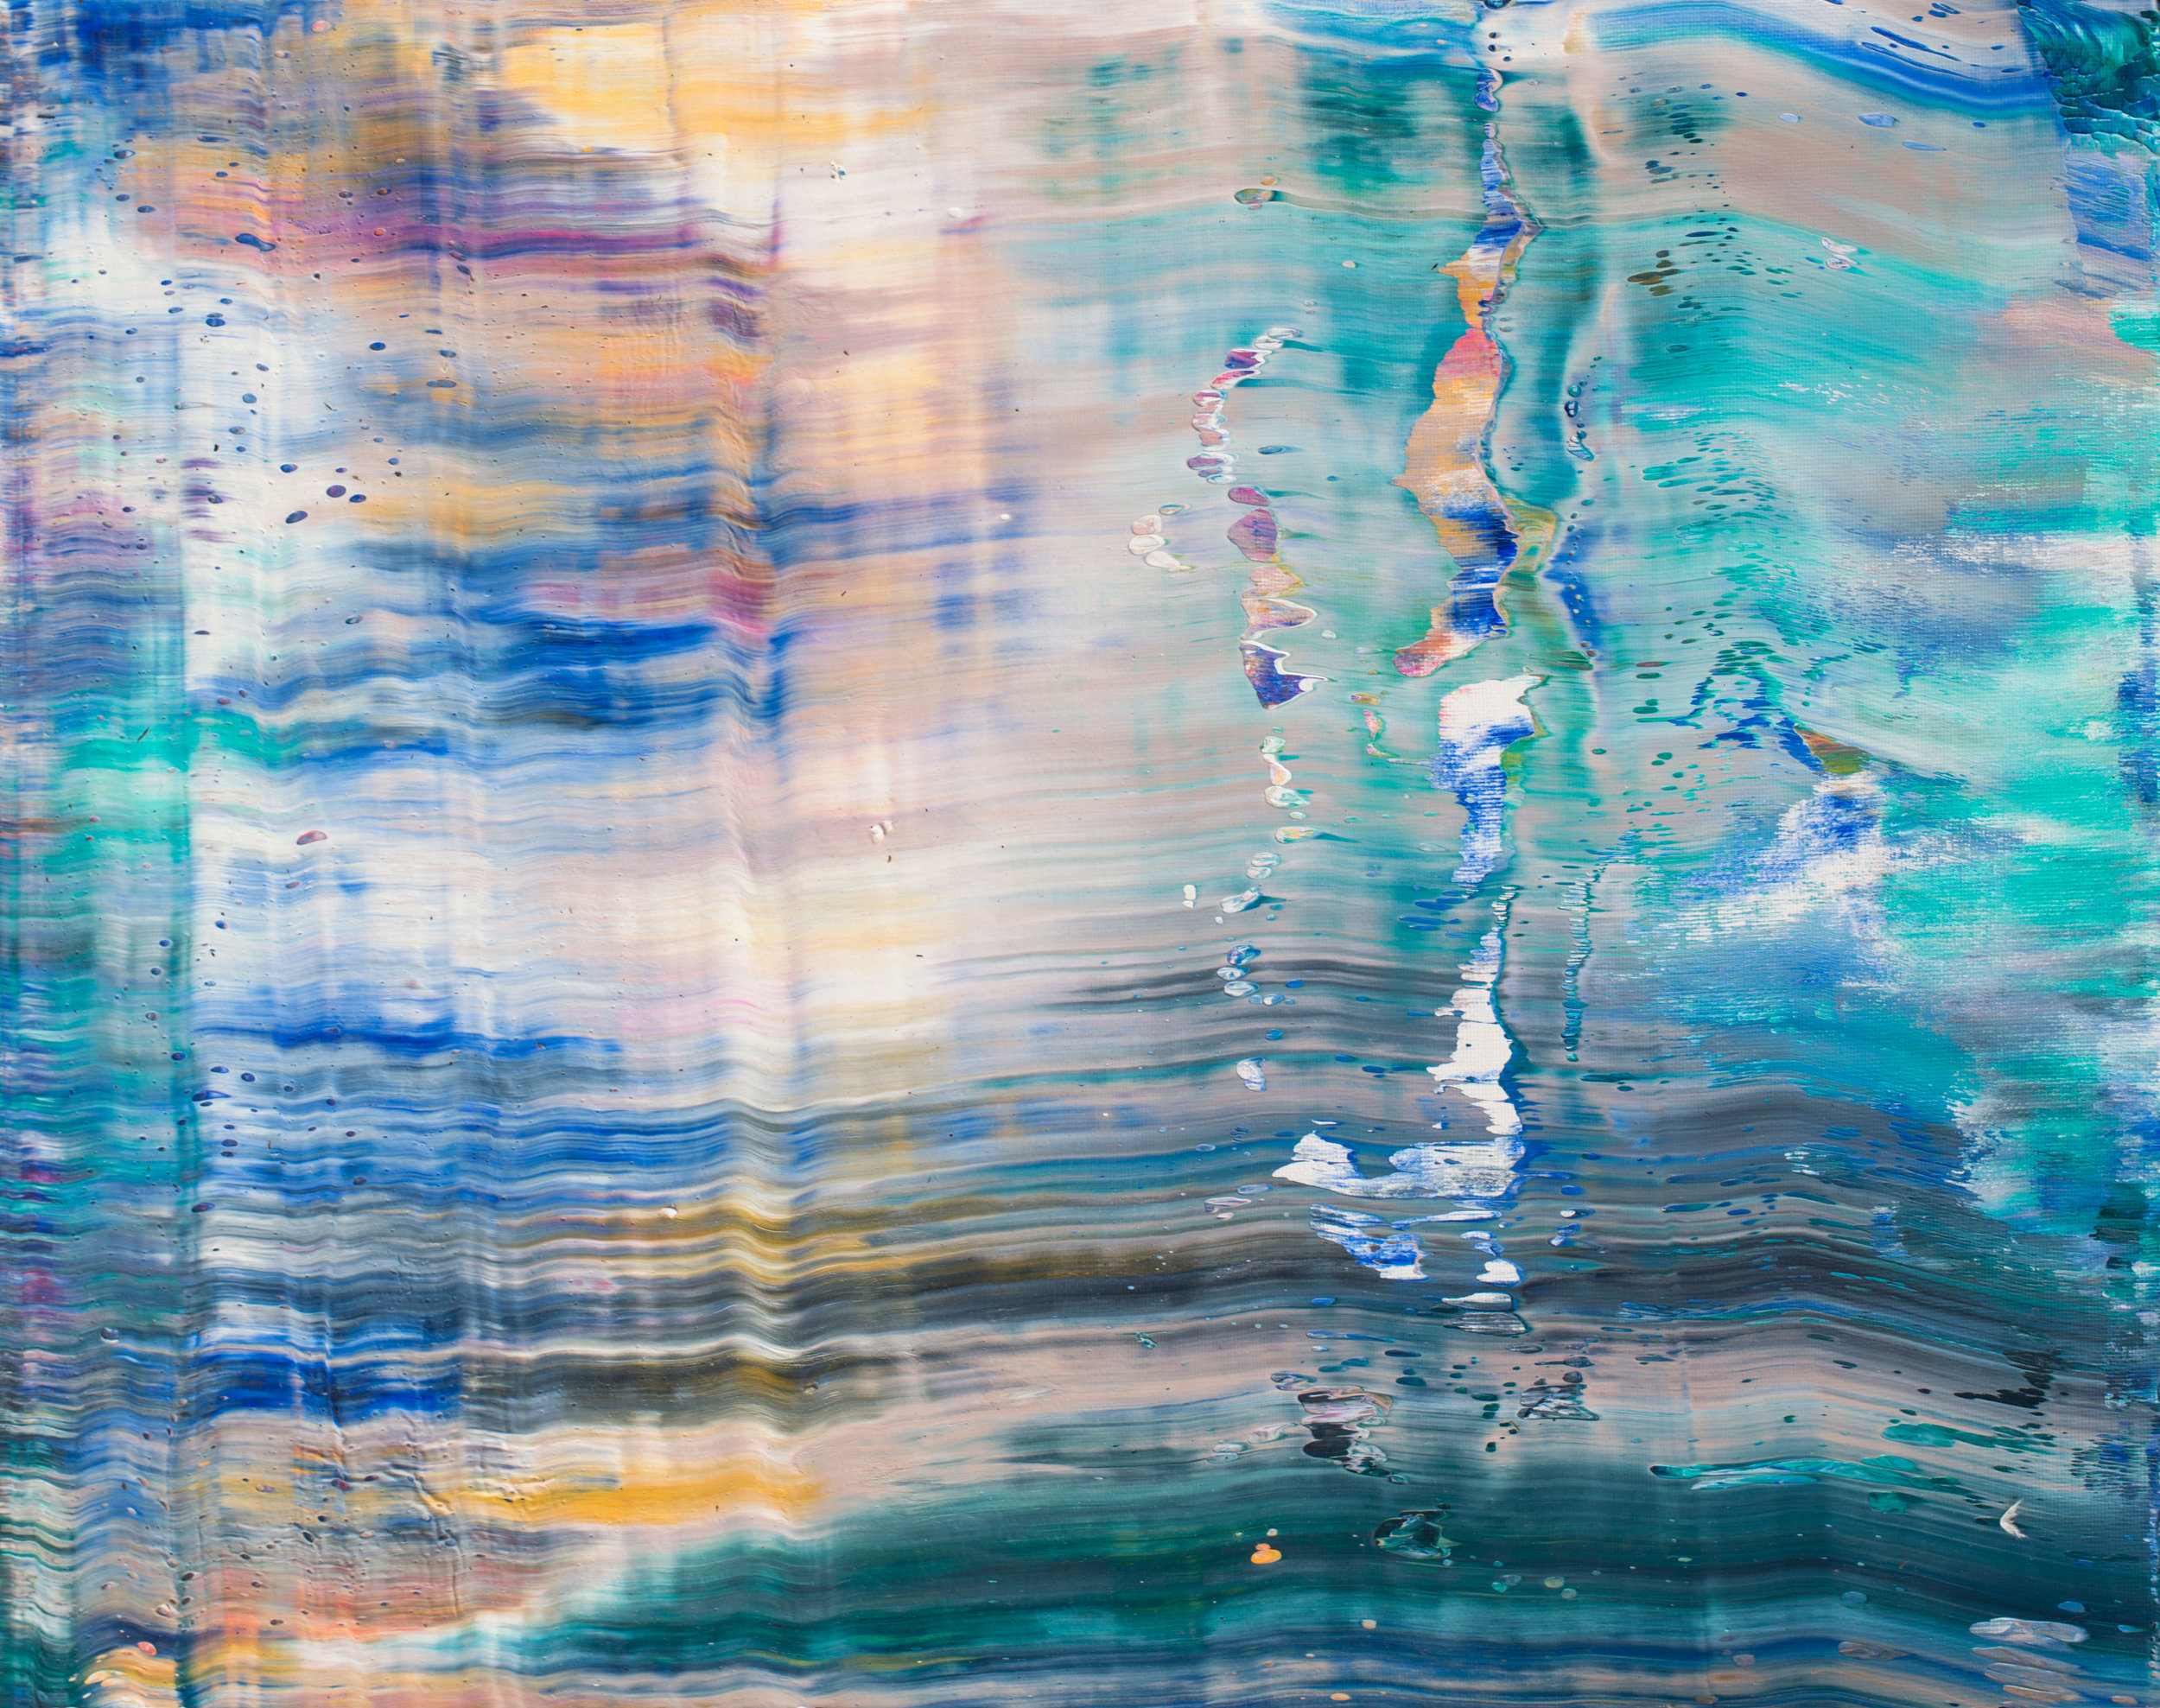 """""""AFTERGLOW"""" Is an original, abstract painting created by Los Angeles based artist, Laura Viapiano"""